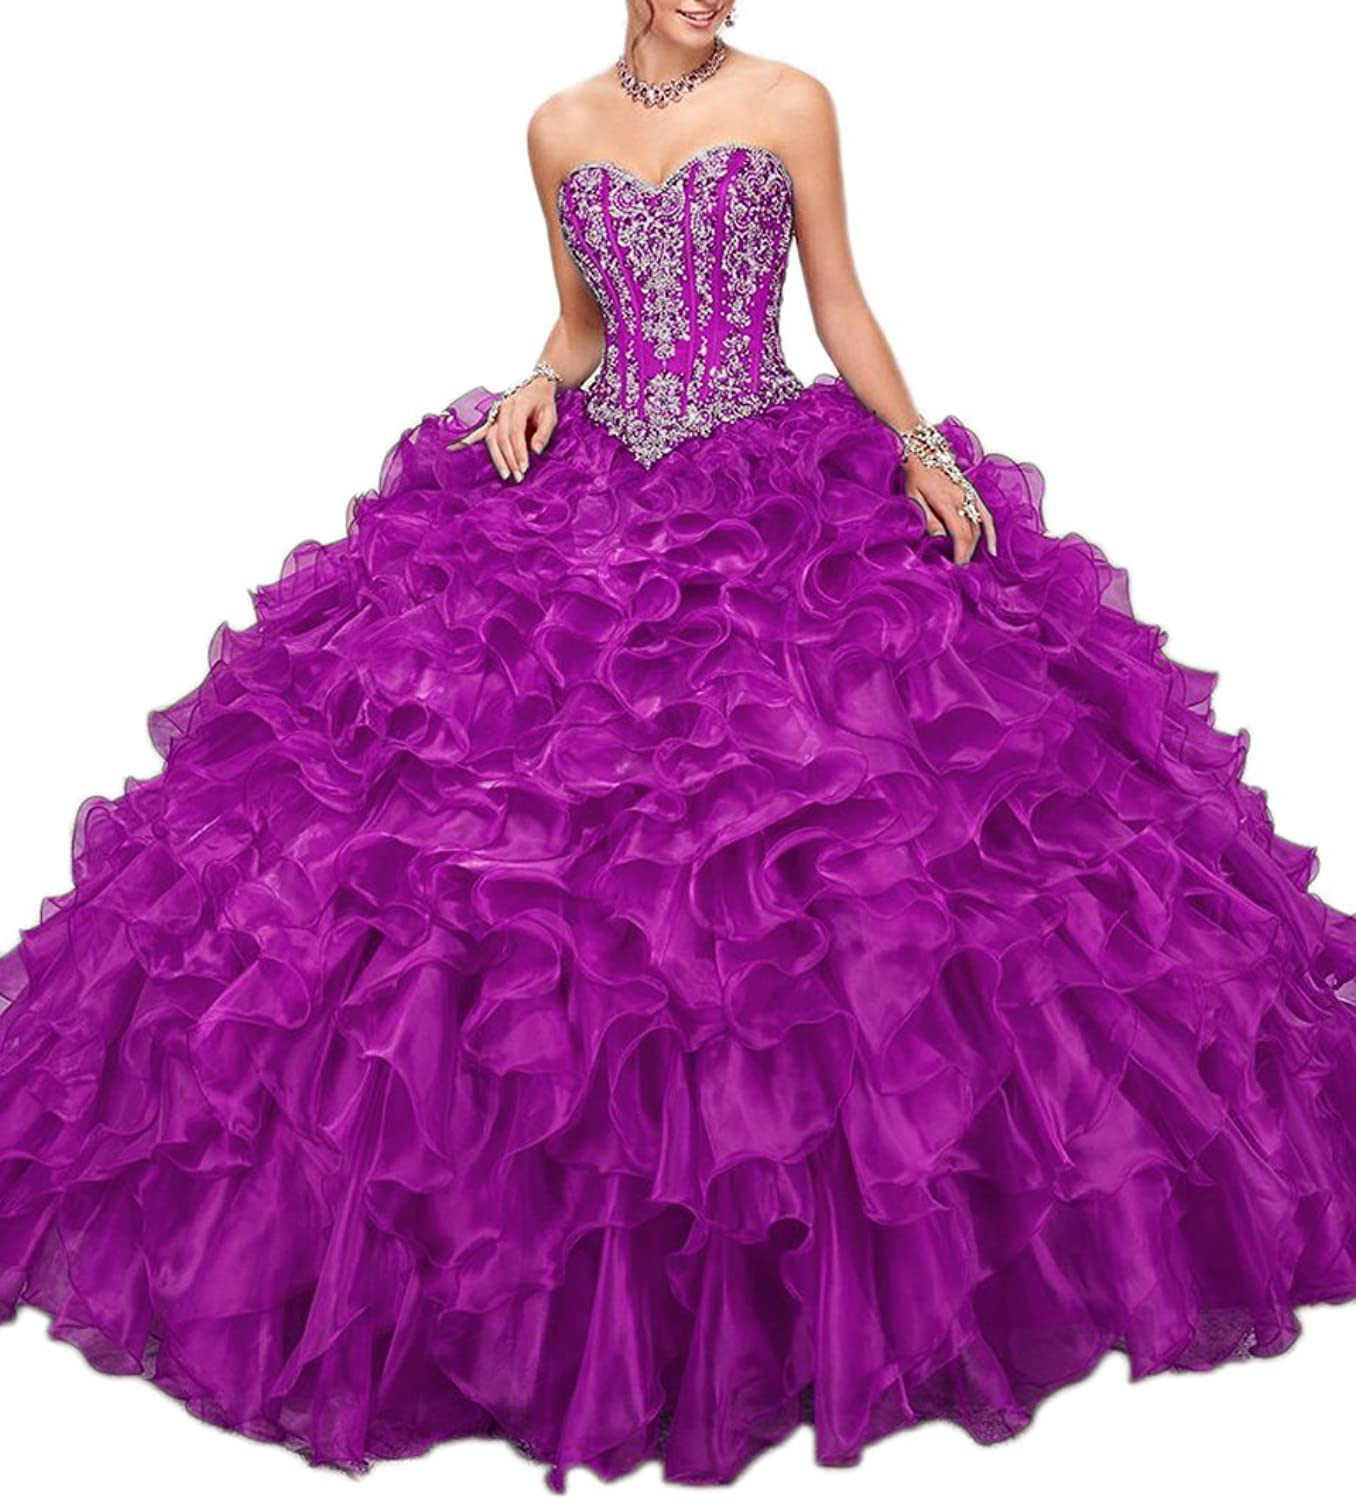 Liaoye Women's Sweetheart Quinceanera Dresses Beaded Organza Sweet 16 Prom Ball Gown